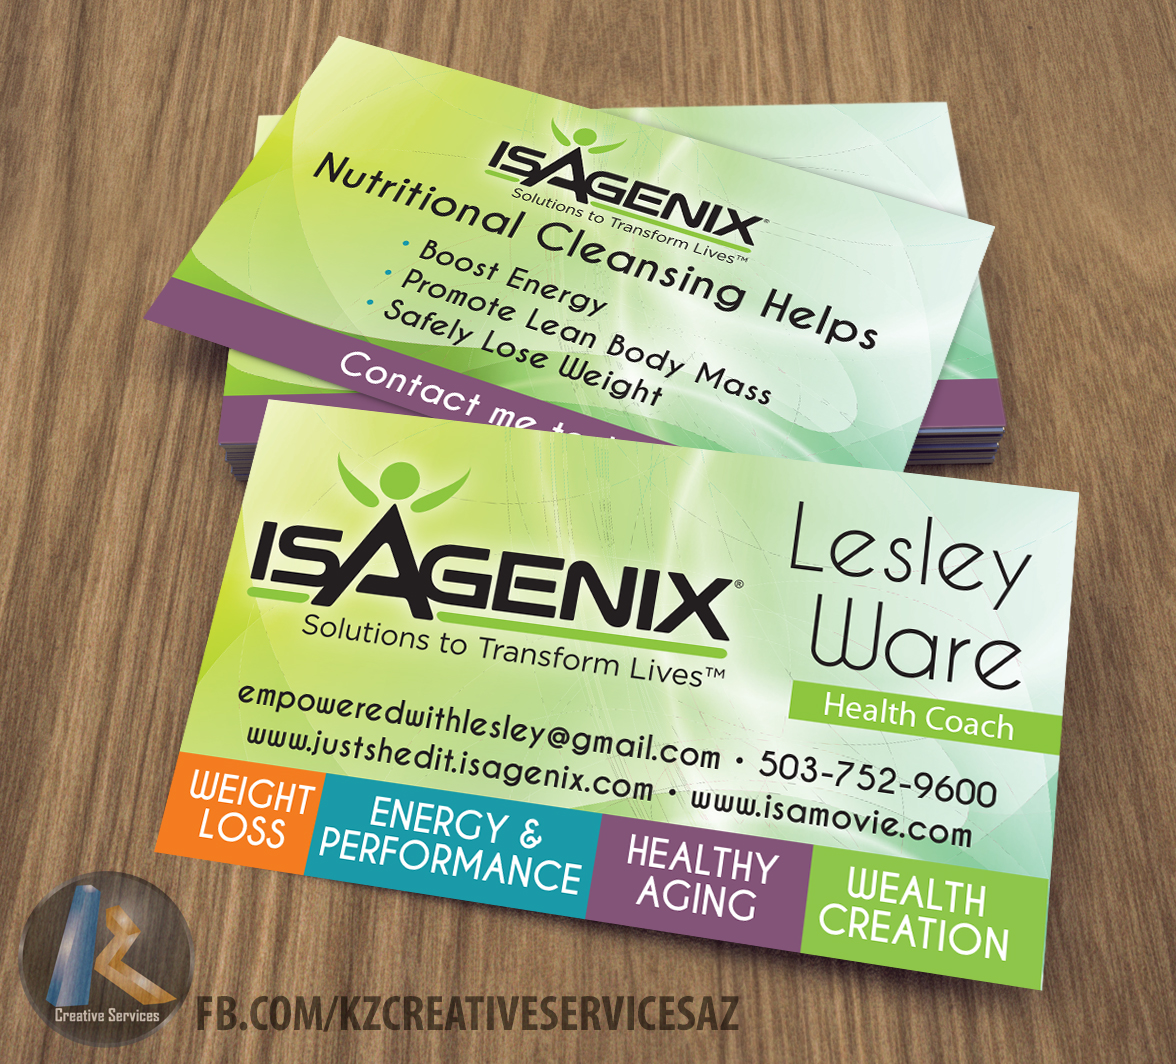 ISAGENIX Business Cards style 2 · KZ Creative Services · Online ...